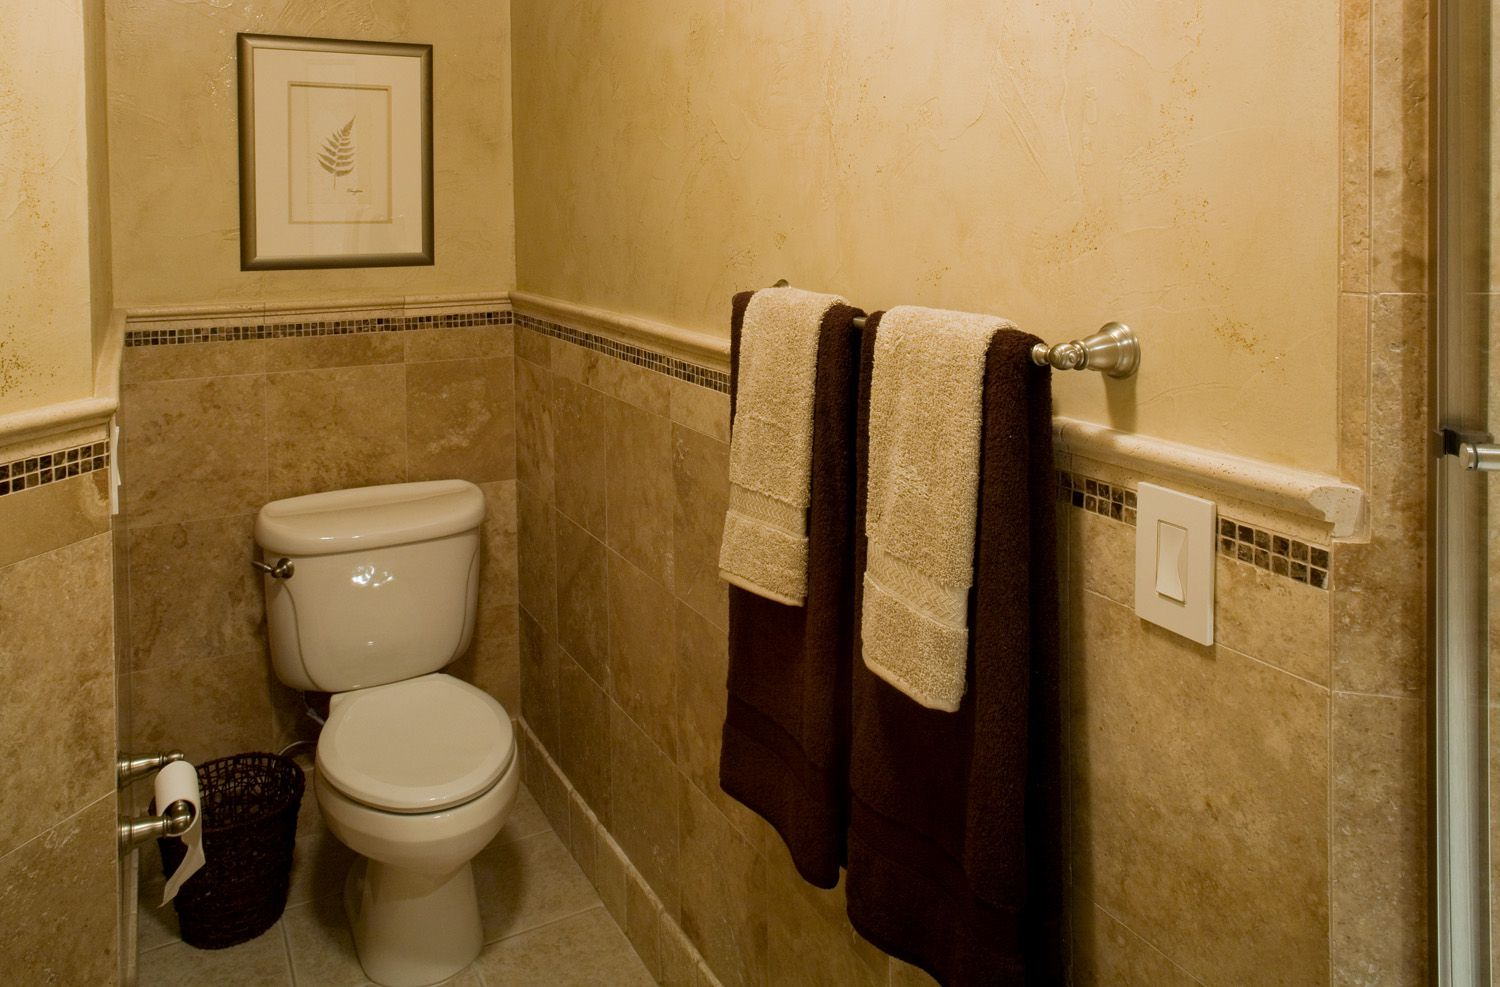 Small Basement Bathroom Ideas Using Stainless Steel Towel Hook and Toilet